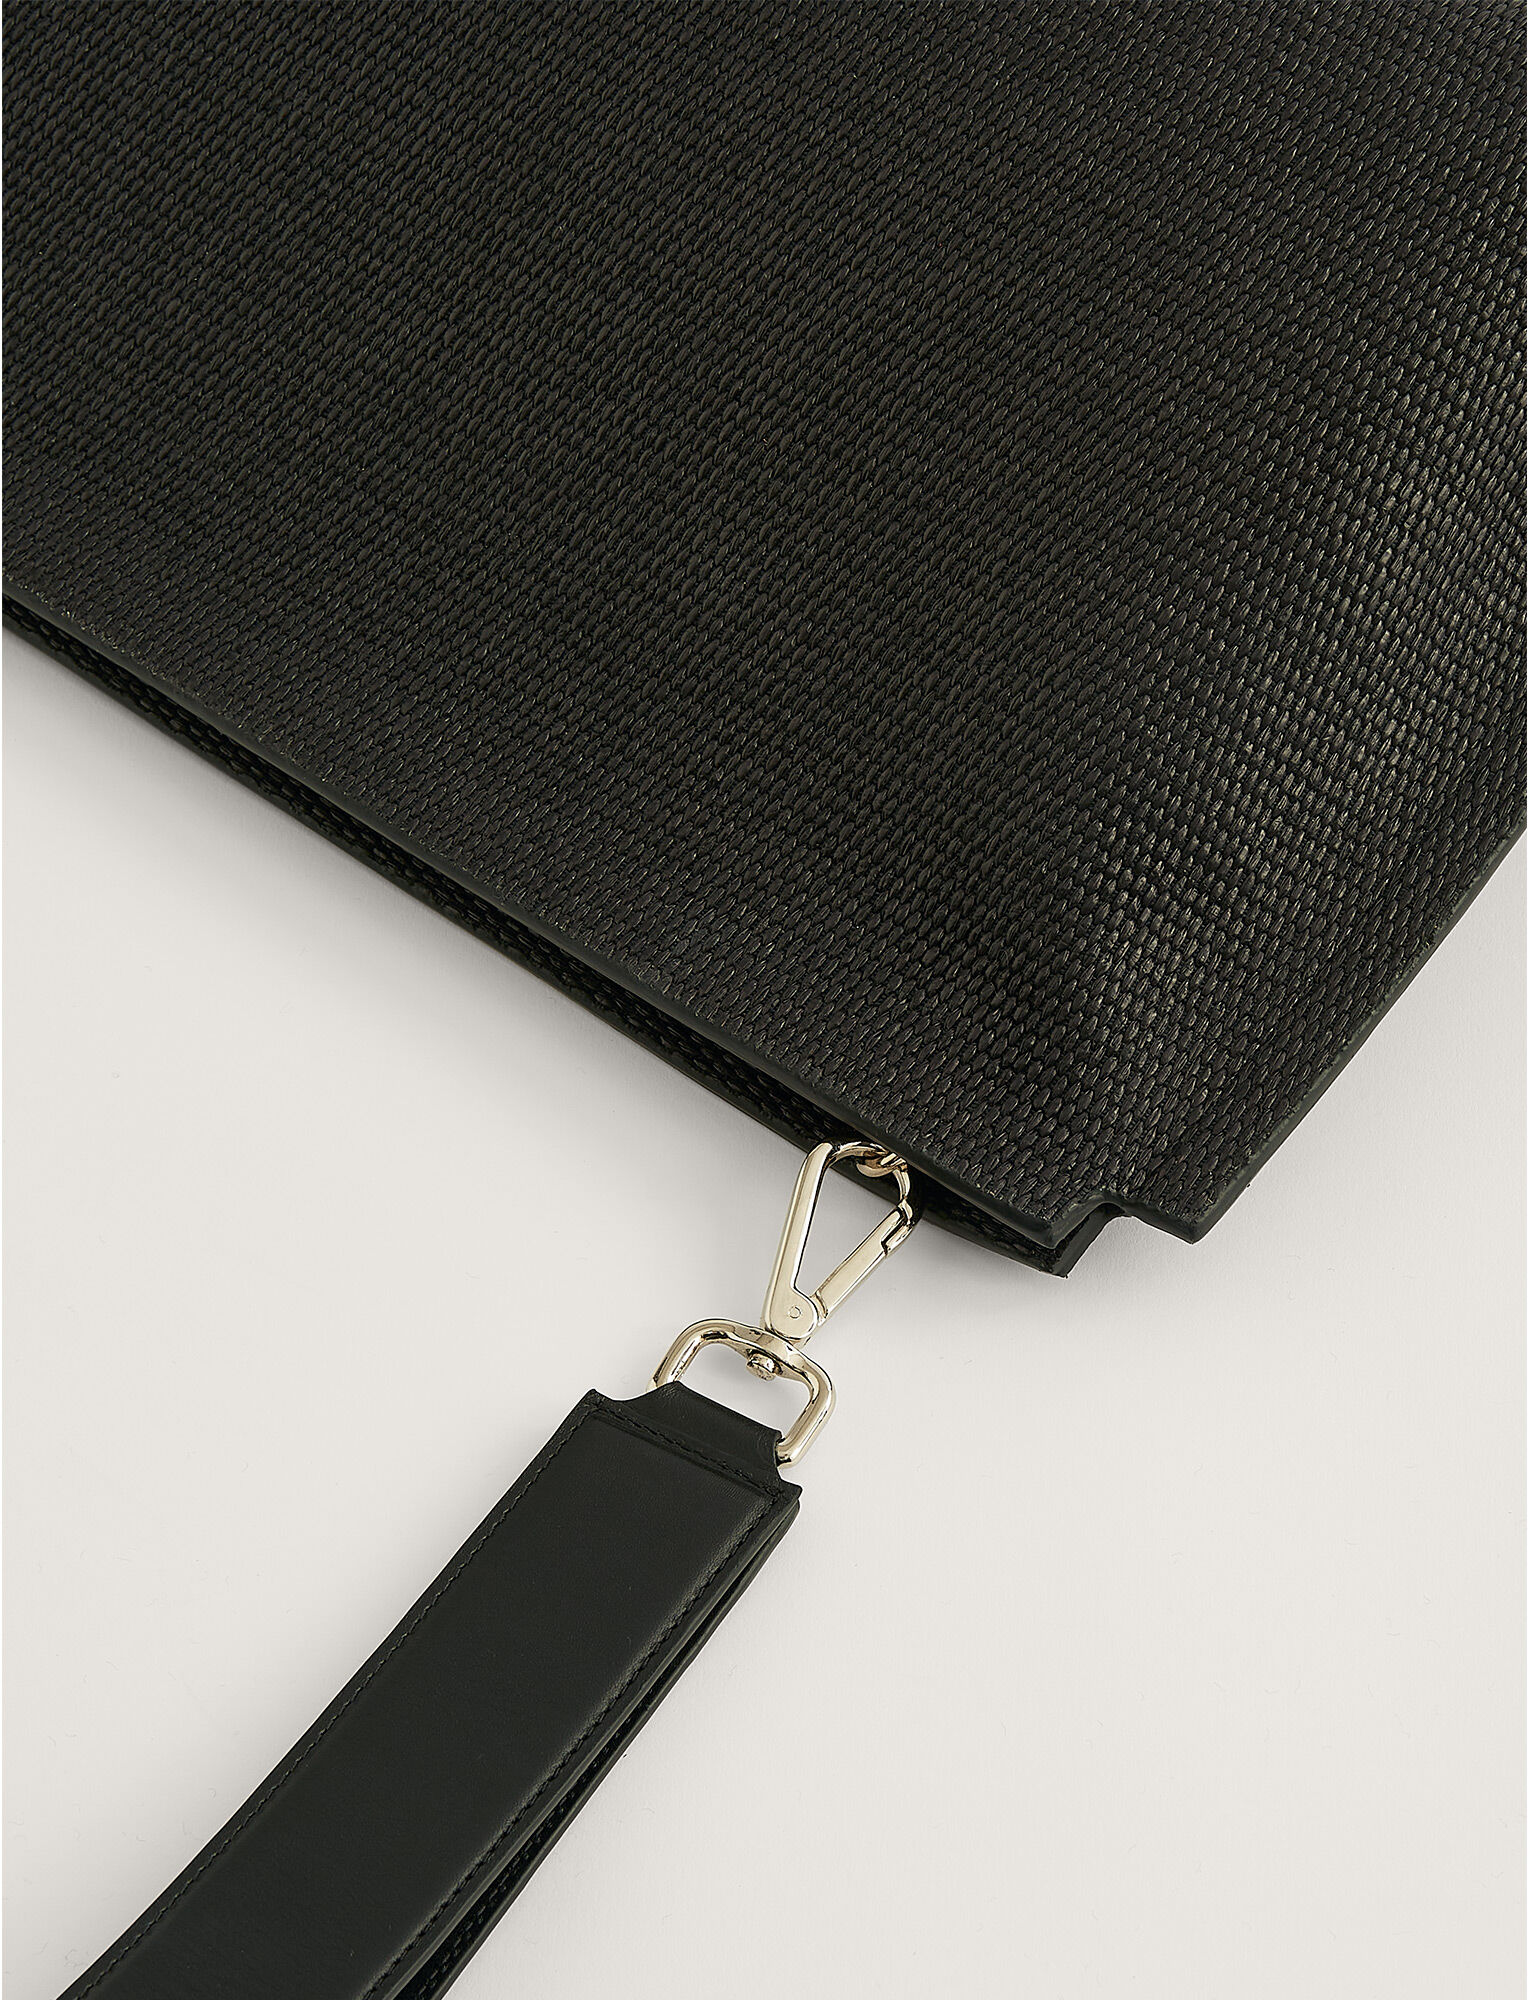 Joseph, Natural Fabric Clutch Bag, in BLACK